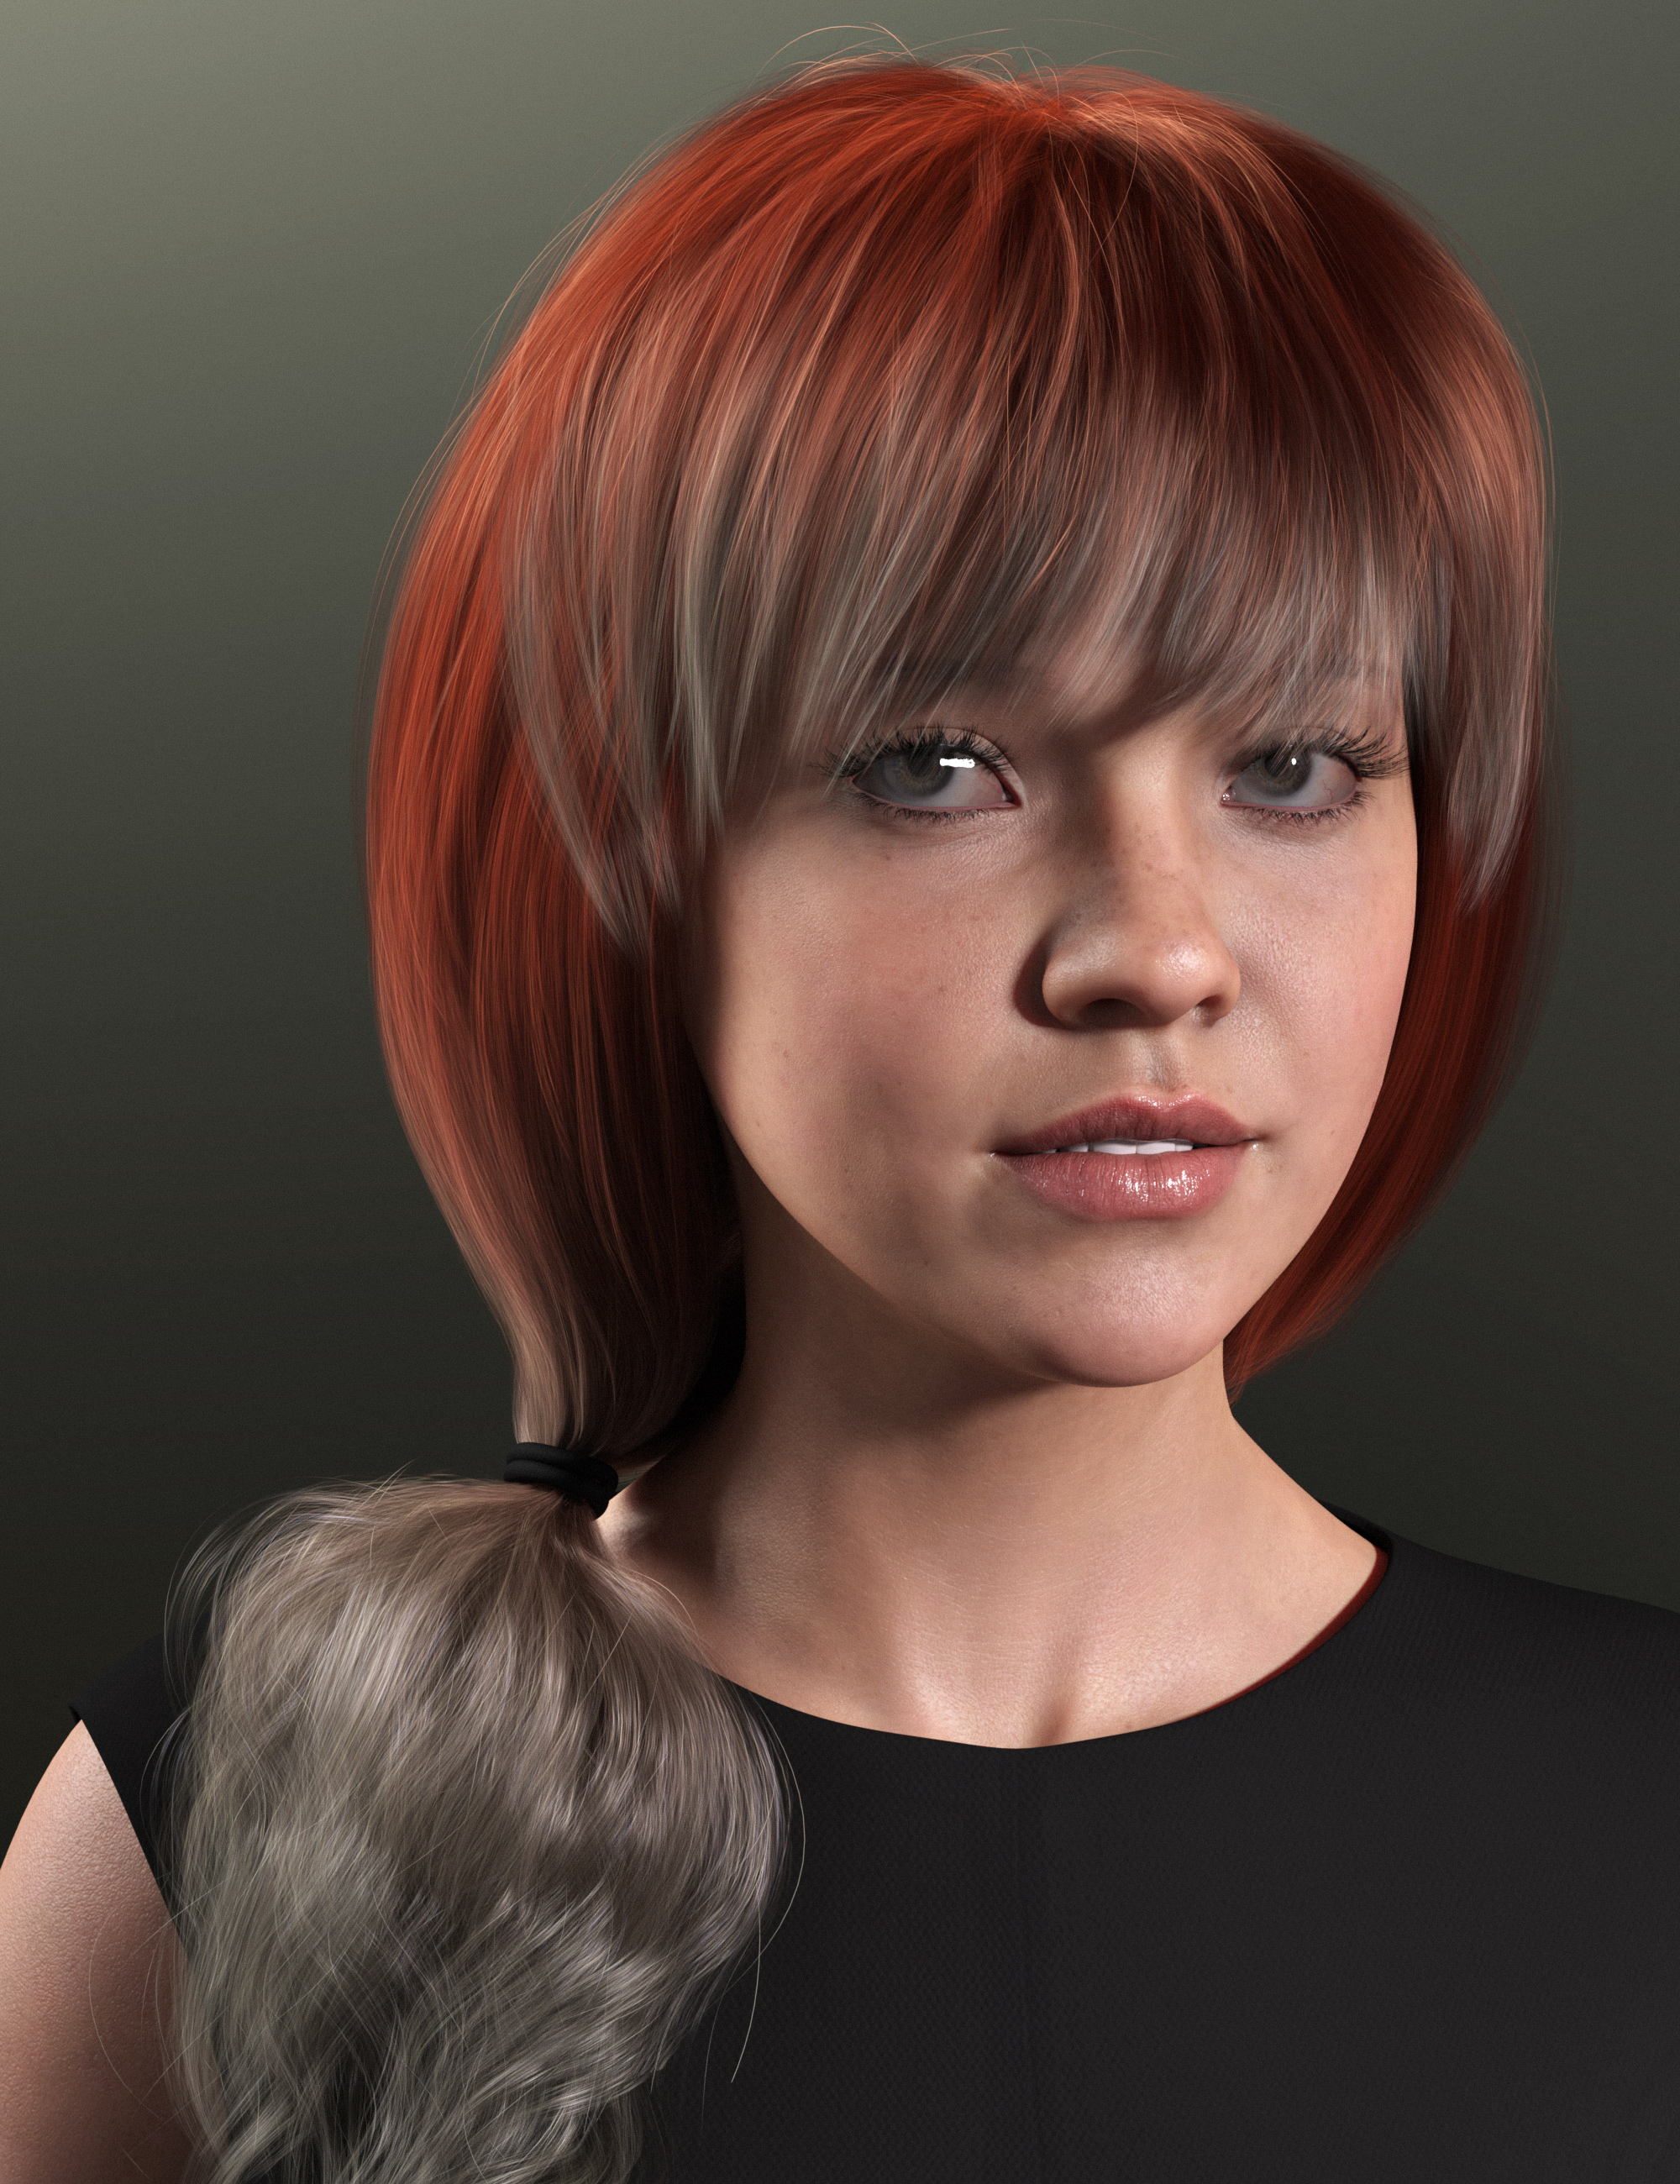 2021-05 Hair Texture Expansion by: outoftouch, 3D Models by Daz 3D